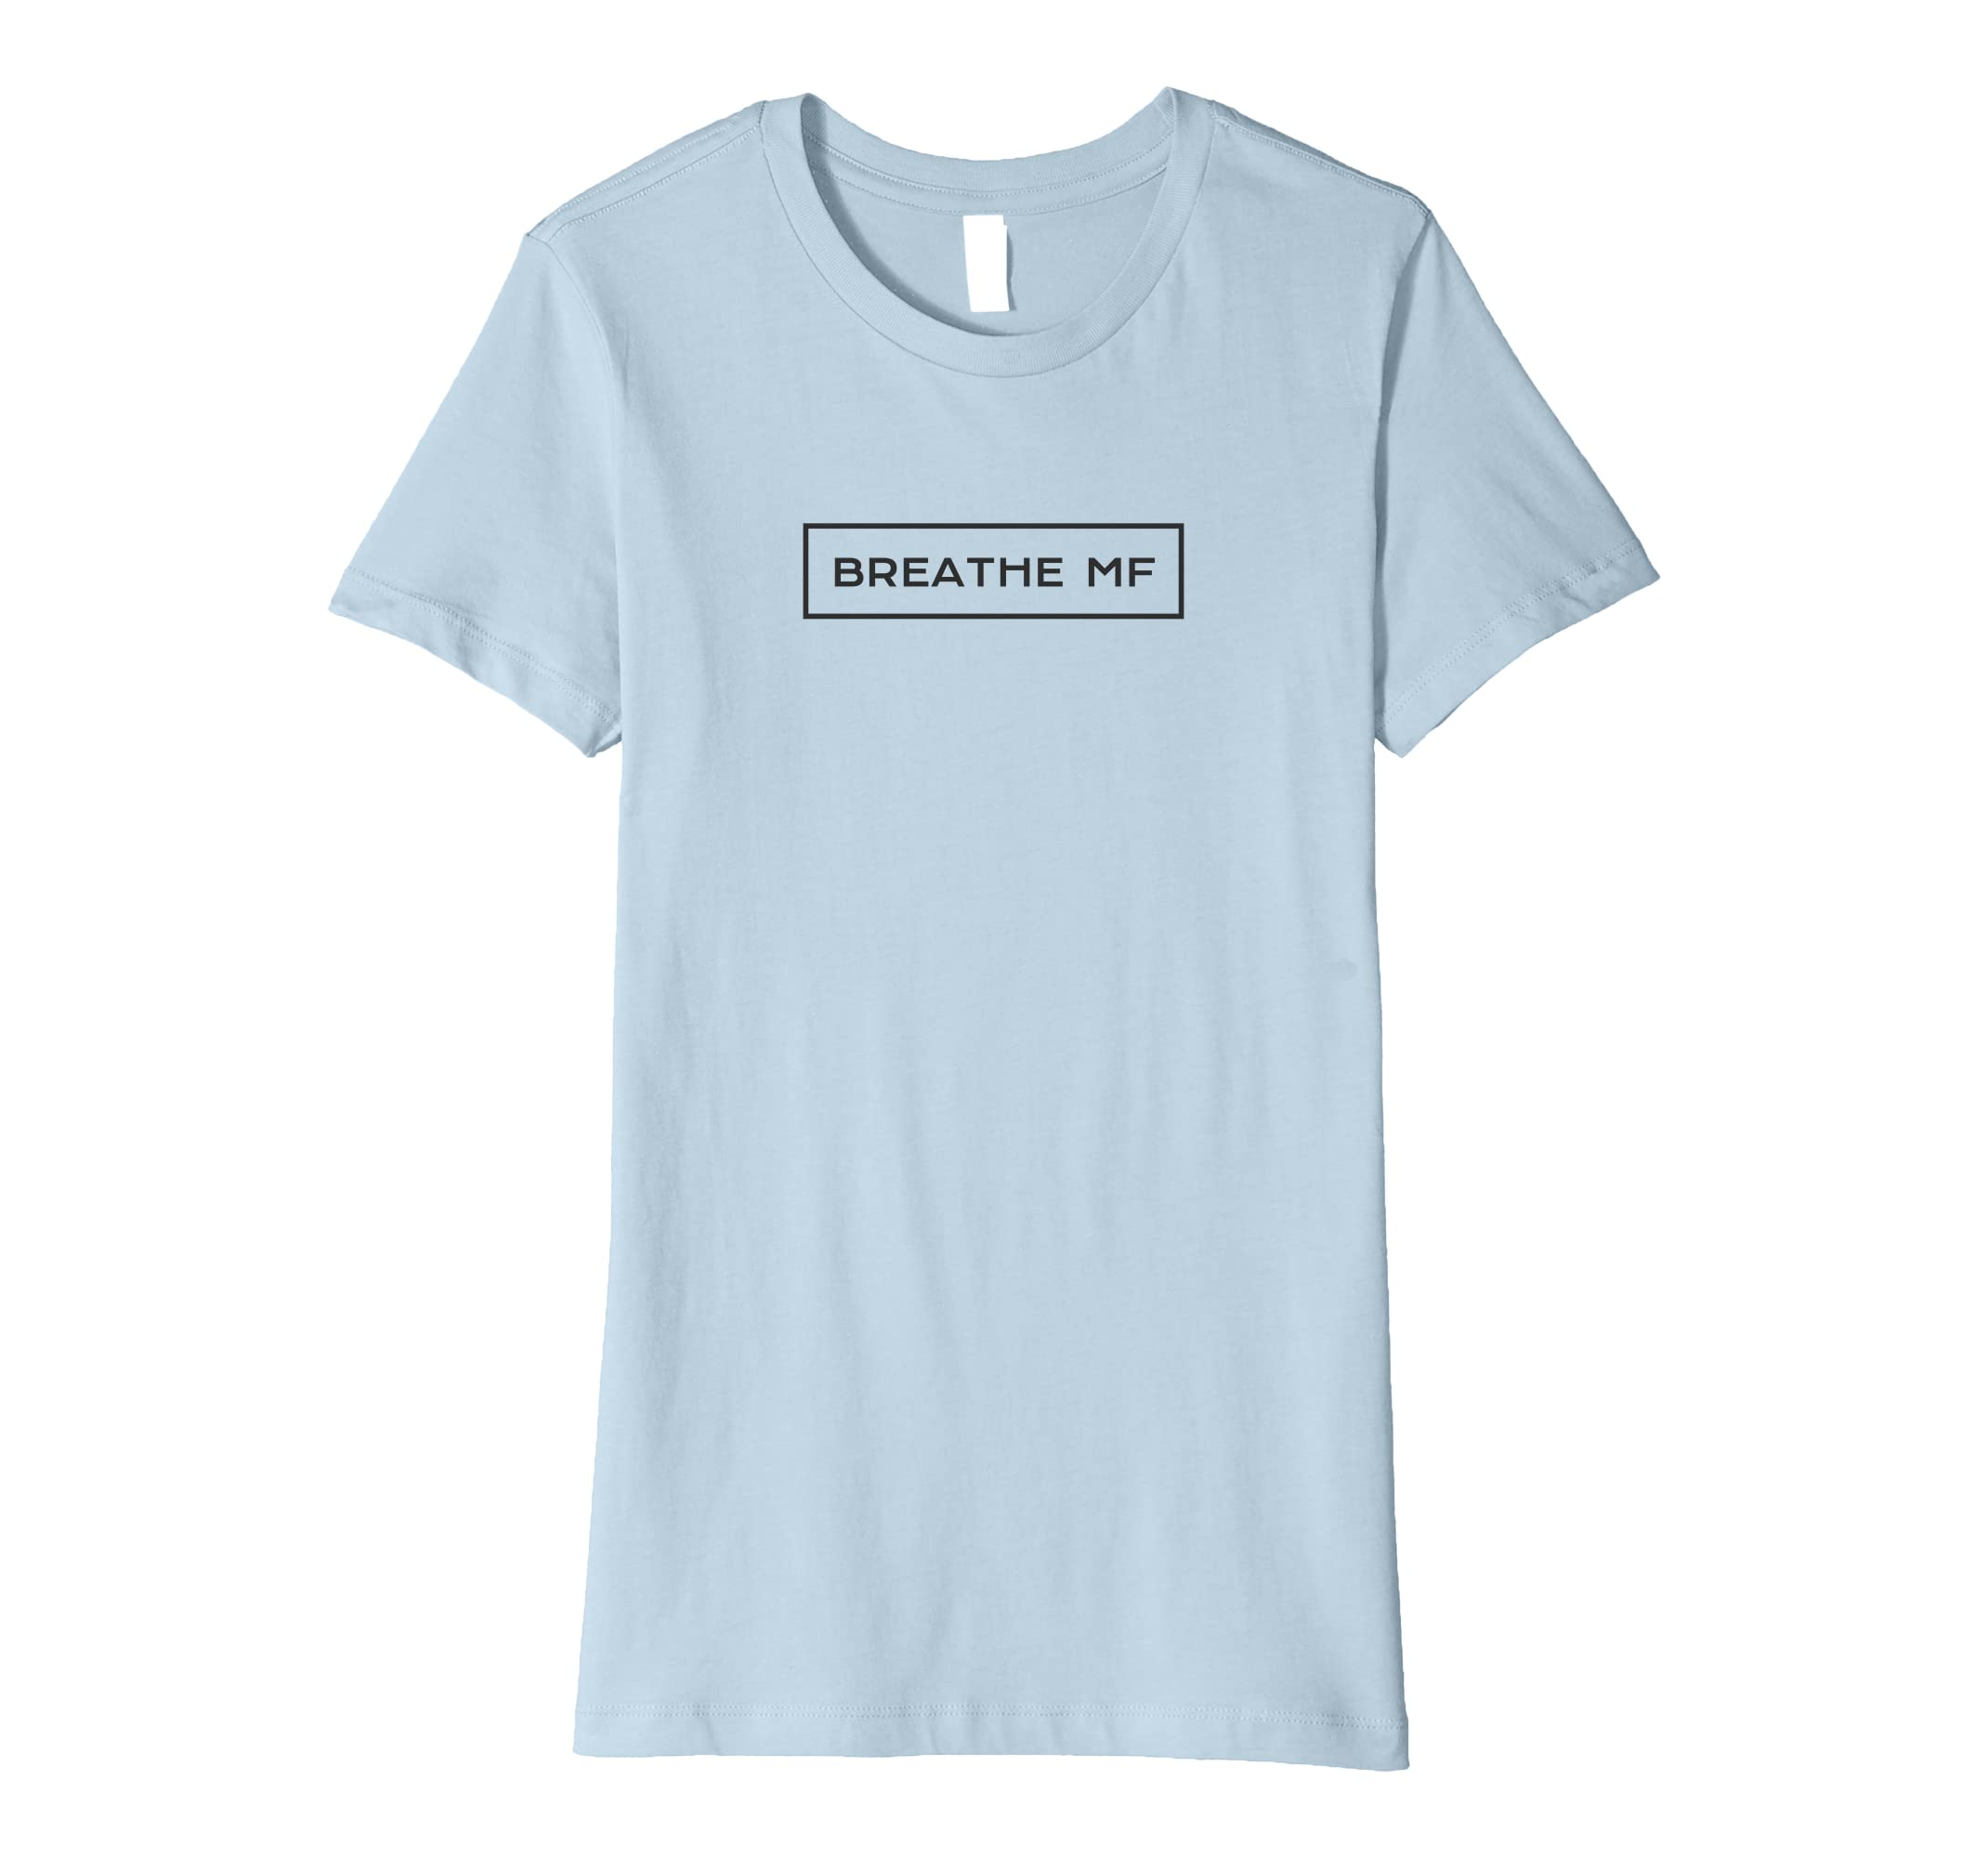 41ee041b79465 Amazon.com: Breathe MF Shirt Inspired By Wim Hof 'Iceman' T-Shirt: Clothing